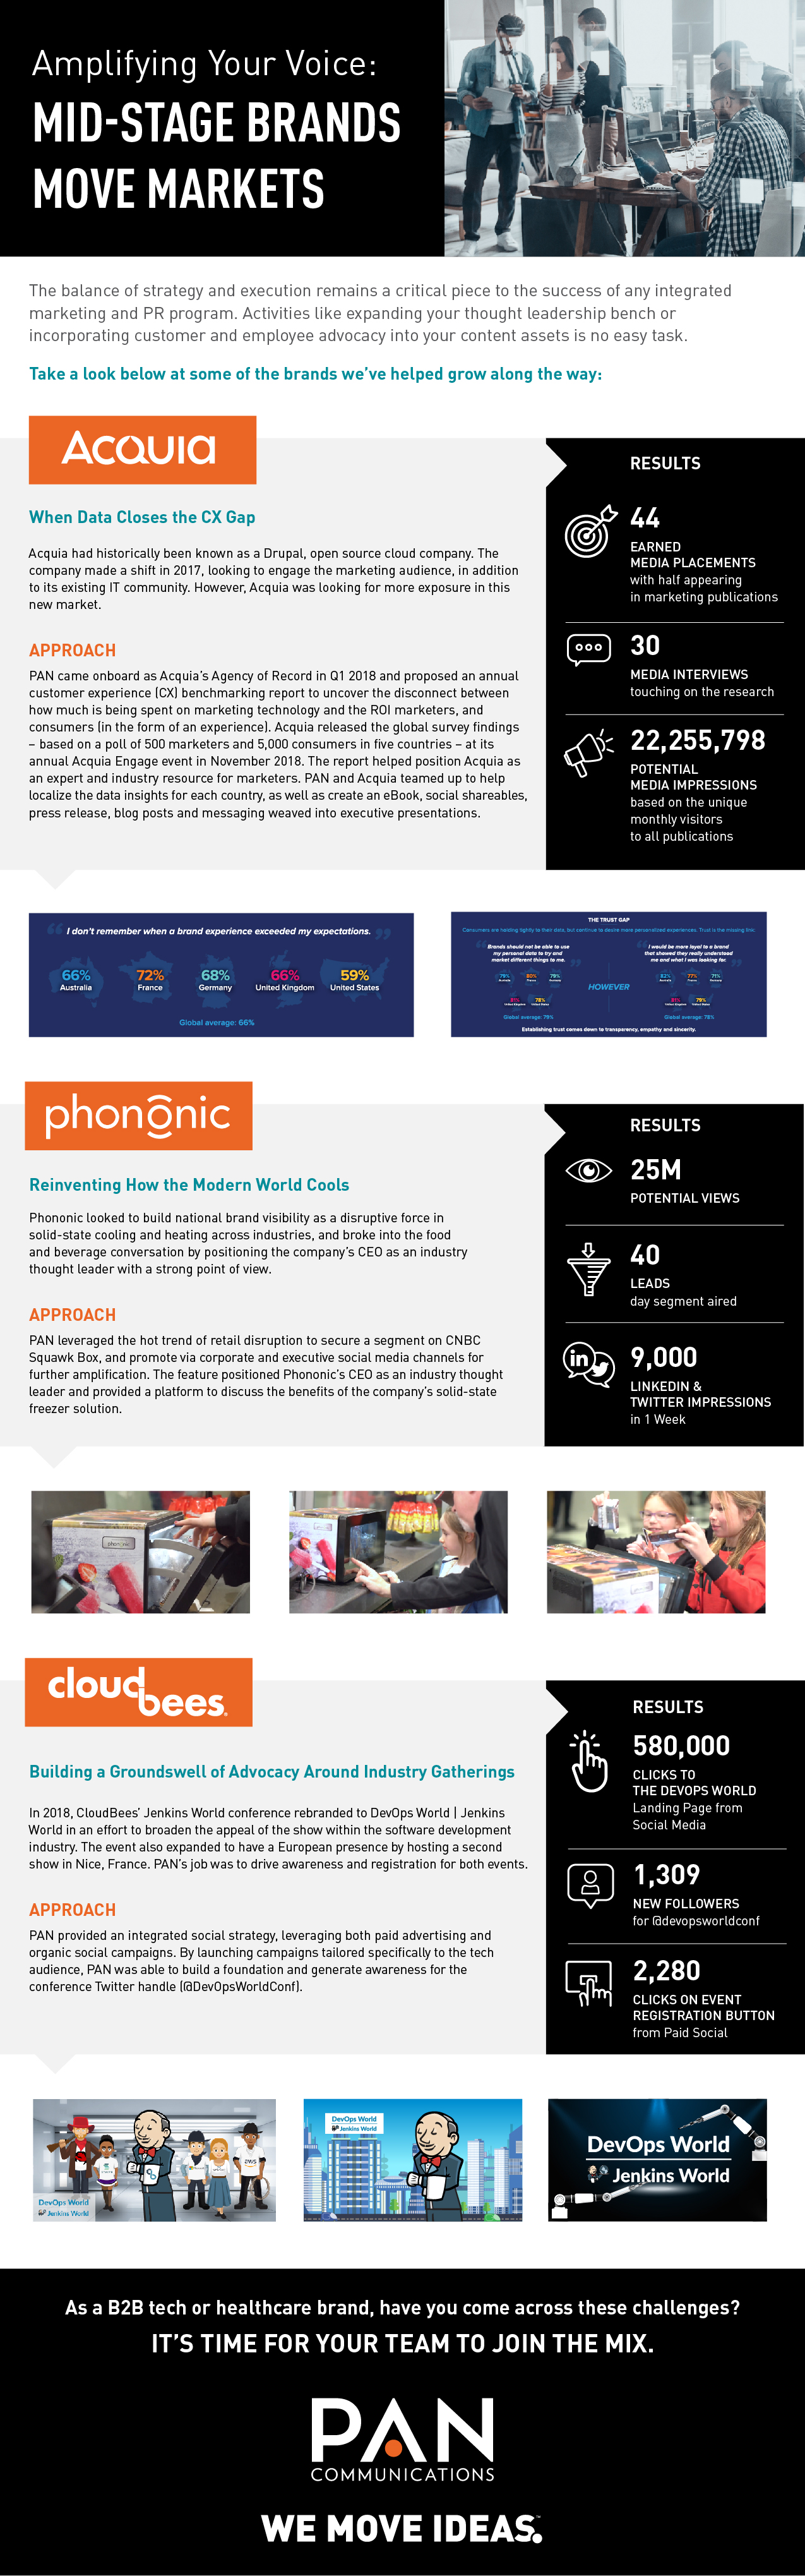 PAN Communications, NXT Stage: Mid-Stage Client Case Studies Infographic